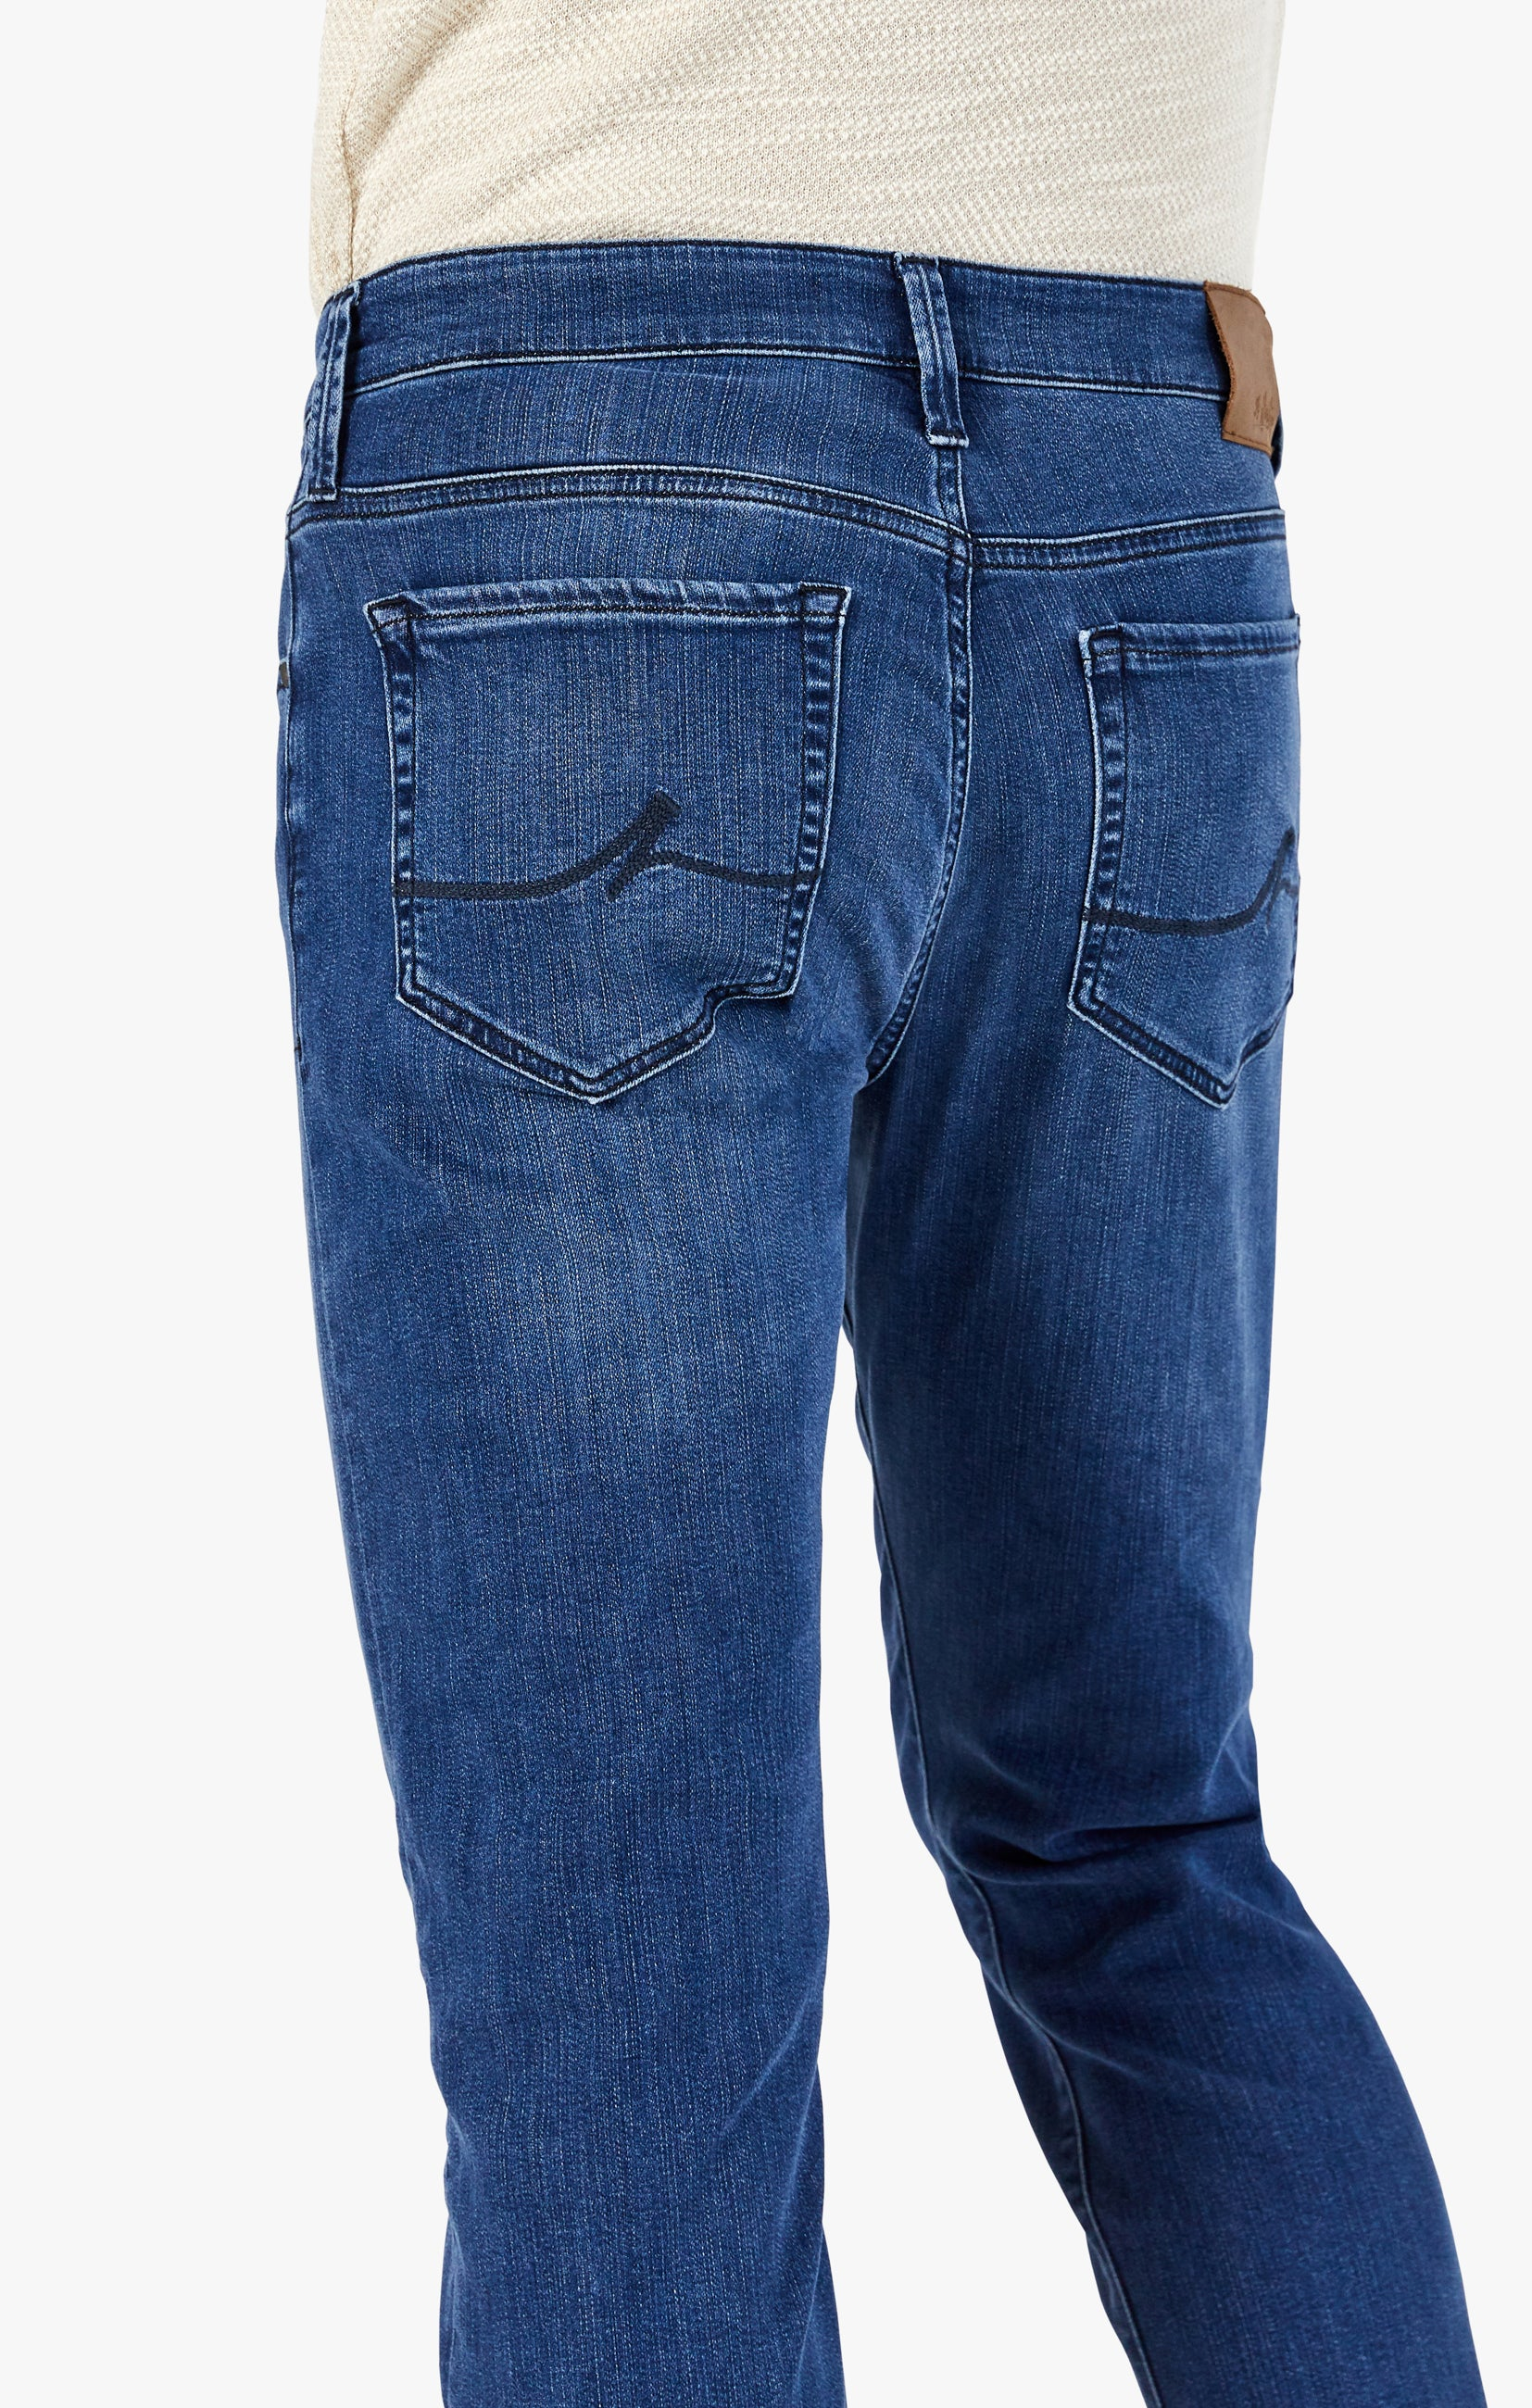 Charisma Relaxed Straight Jeans In Dark Indigo Ultra Image 4